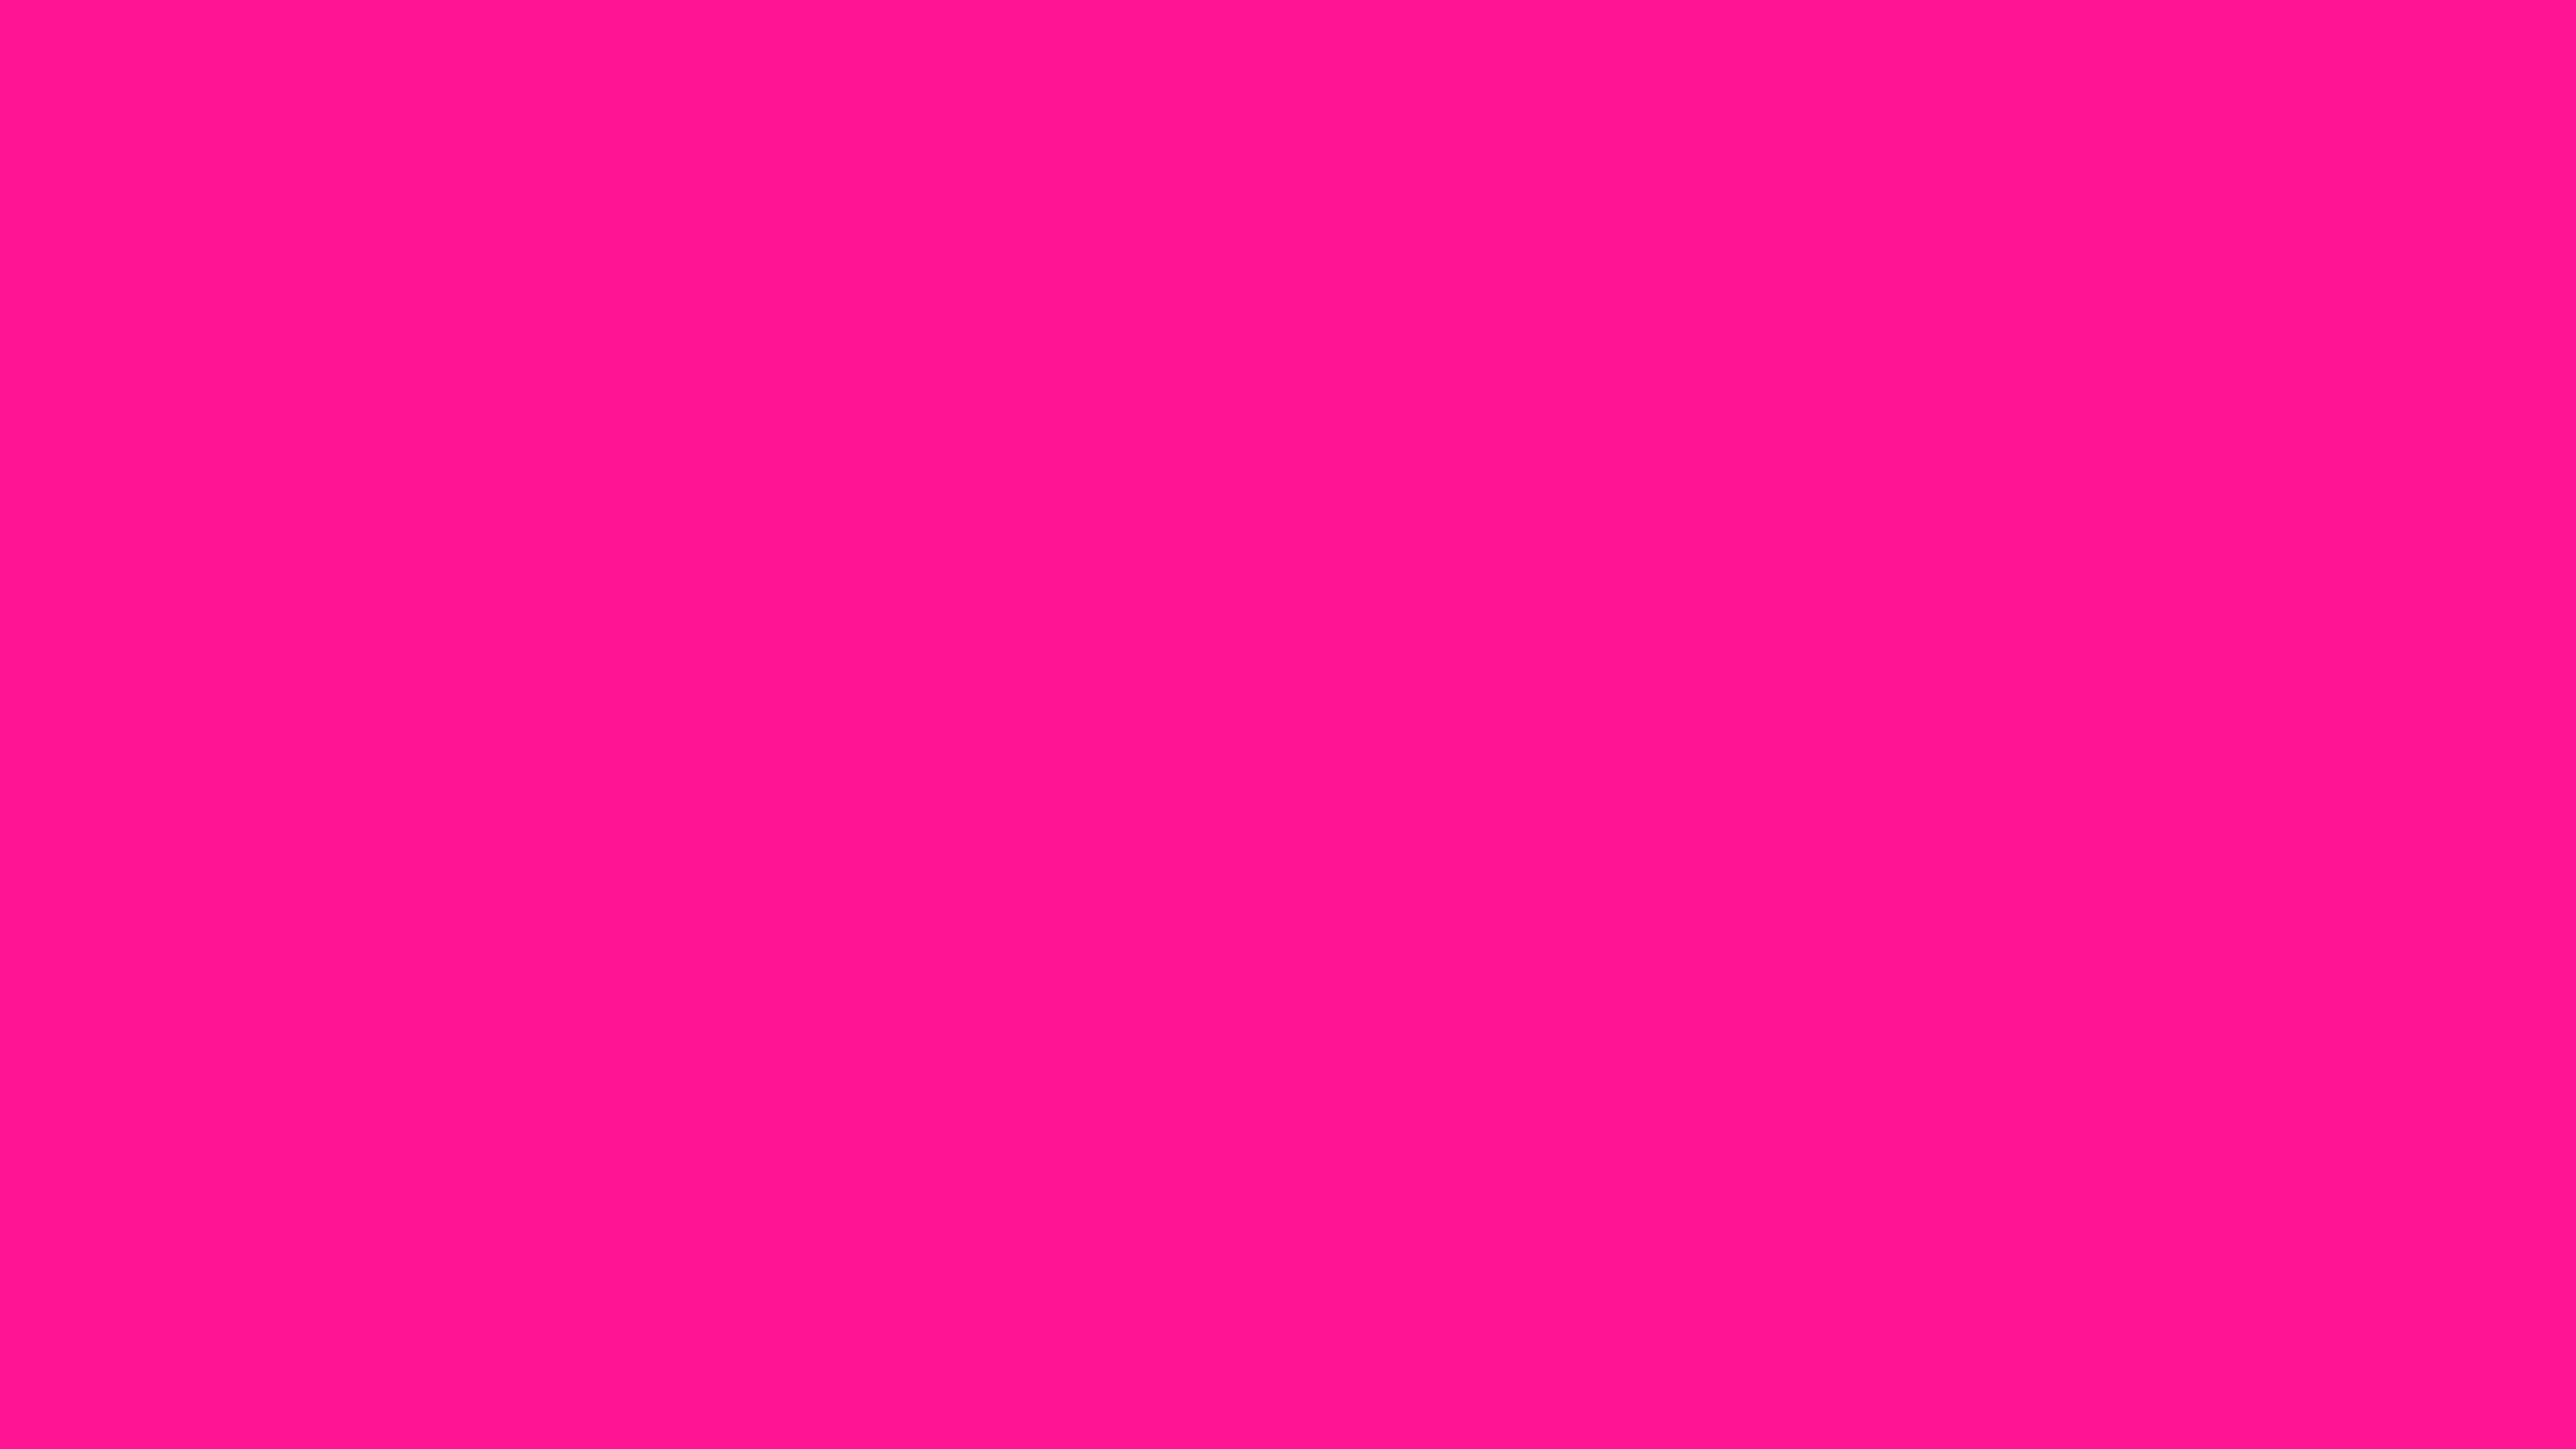 4096x2304 Fluorescent Pink Solid Color Background